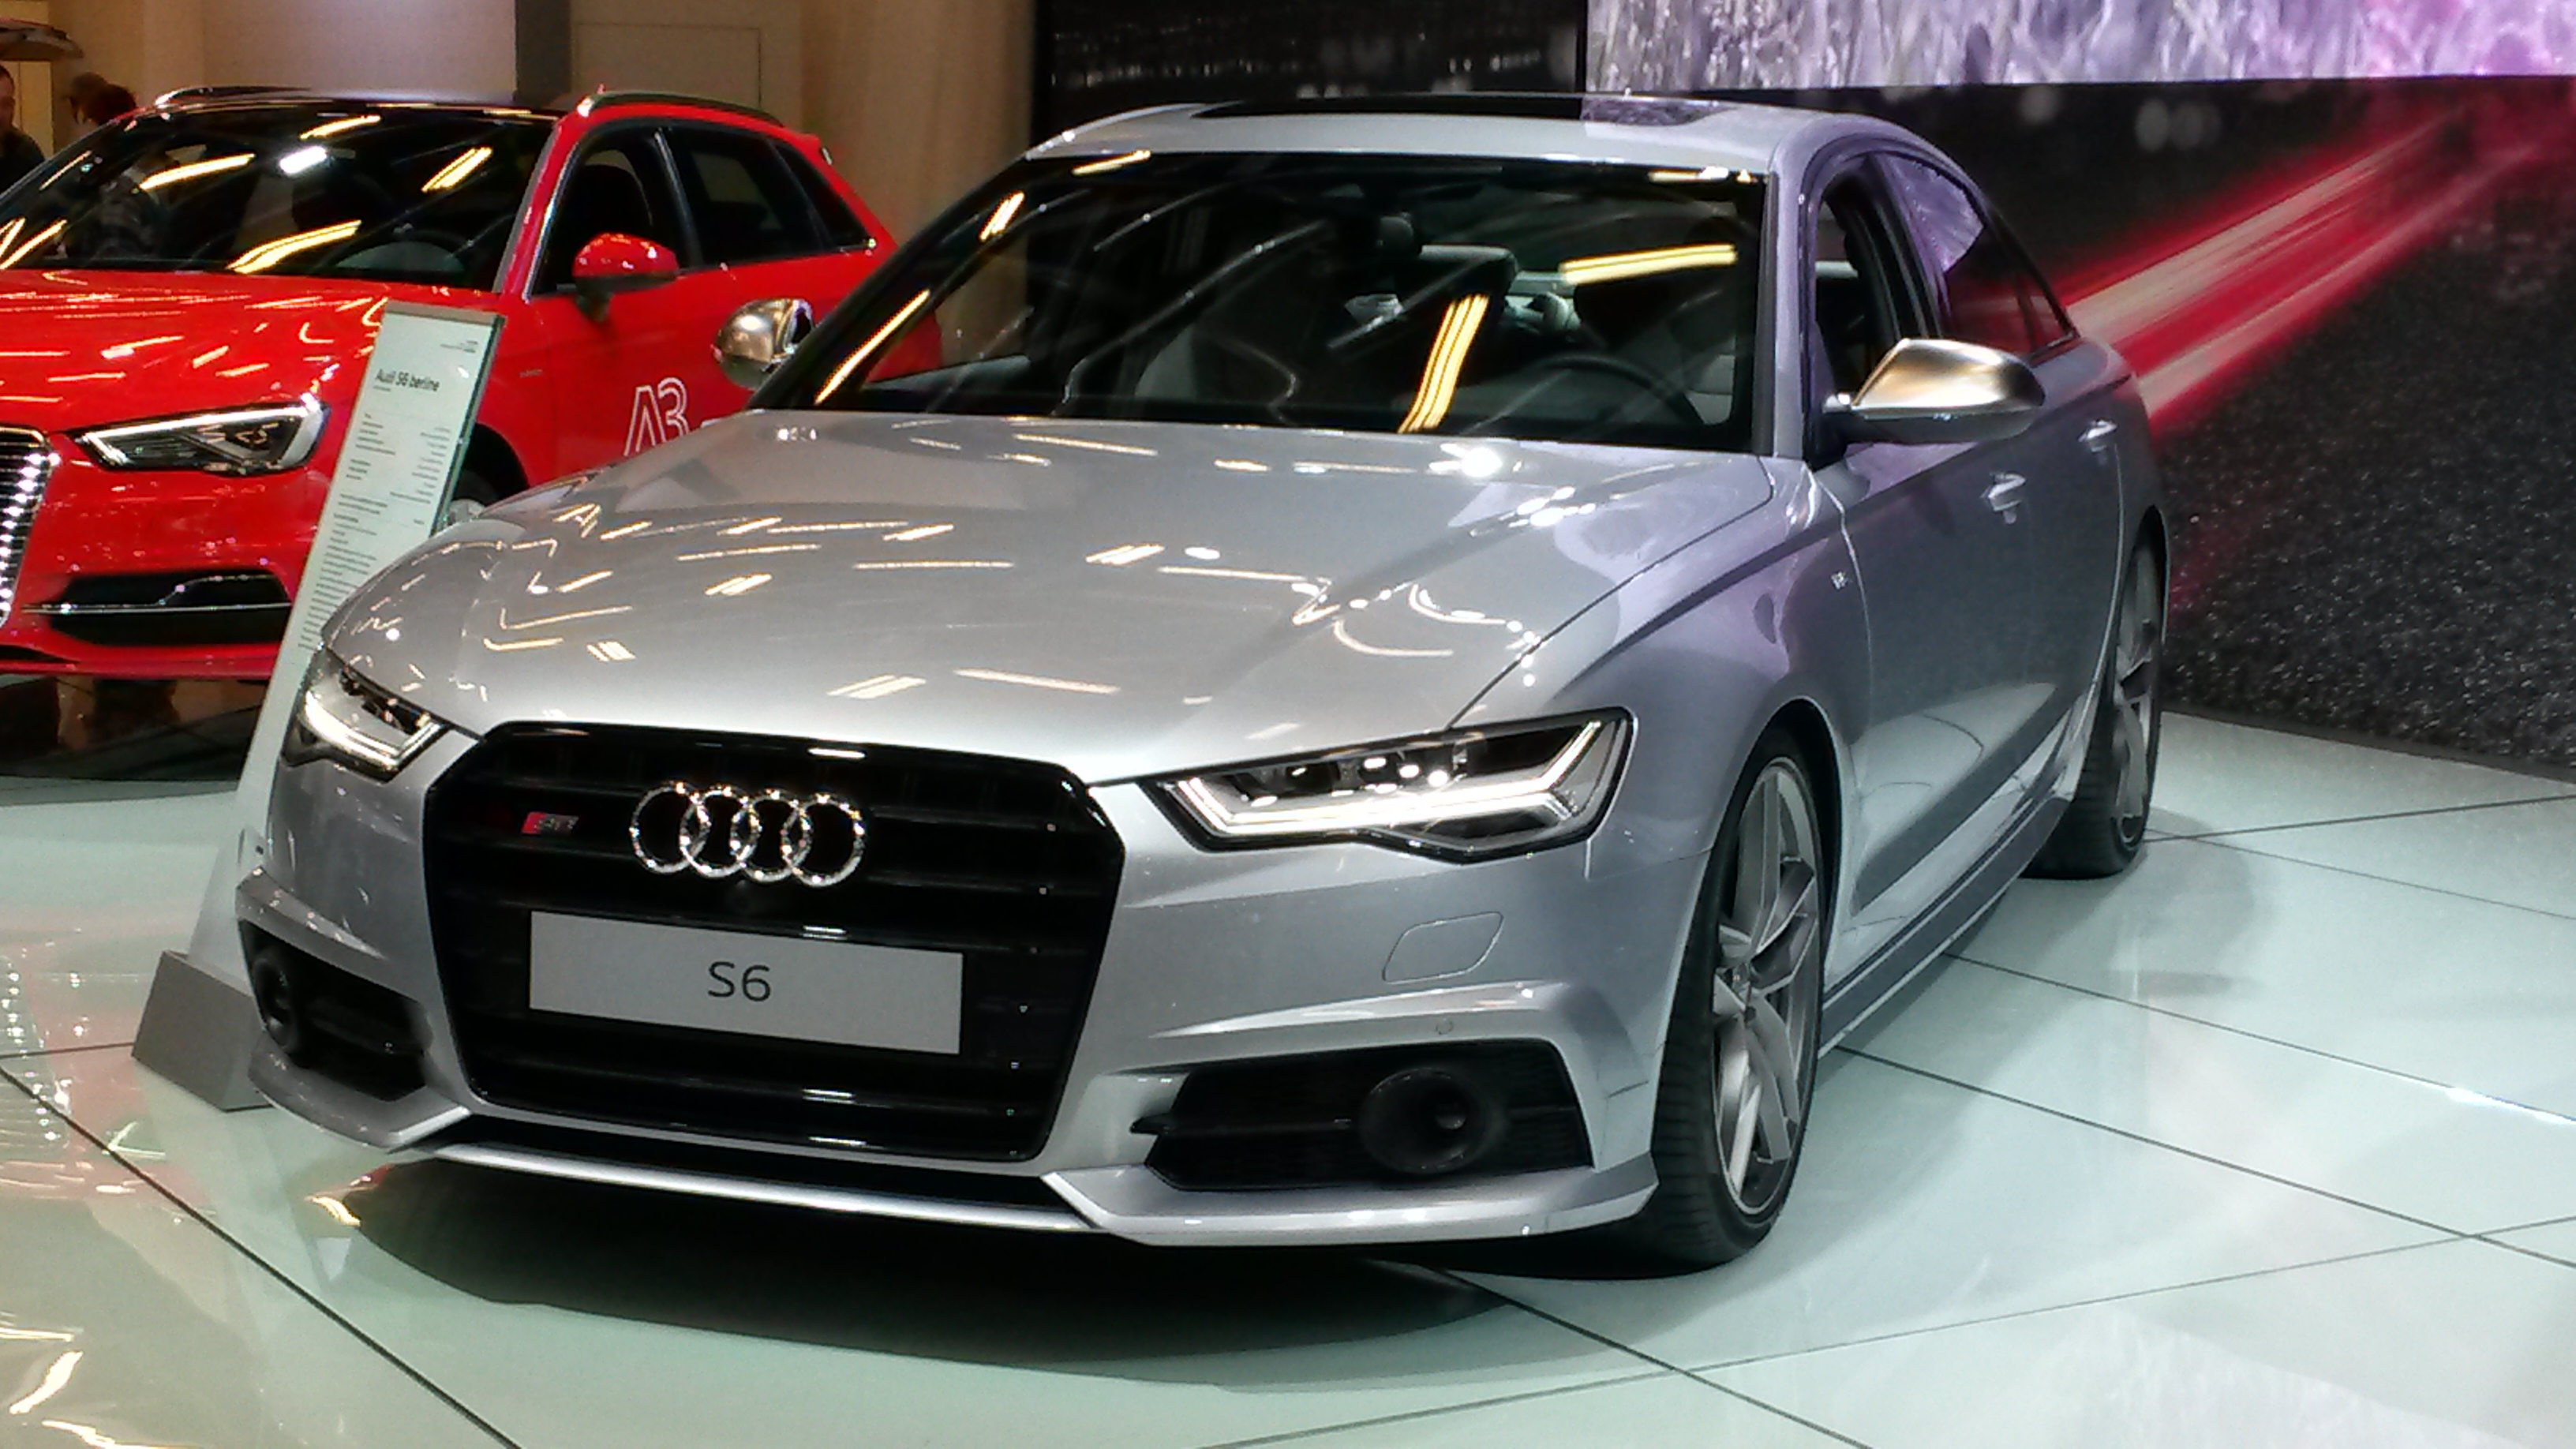 2015 audi a6 avant c7 pictures information and specs auto. Black Bedroom Furniture Sets. Home Design Ideas